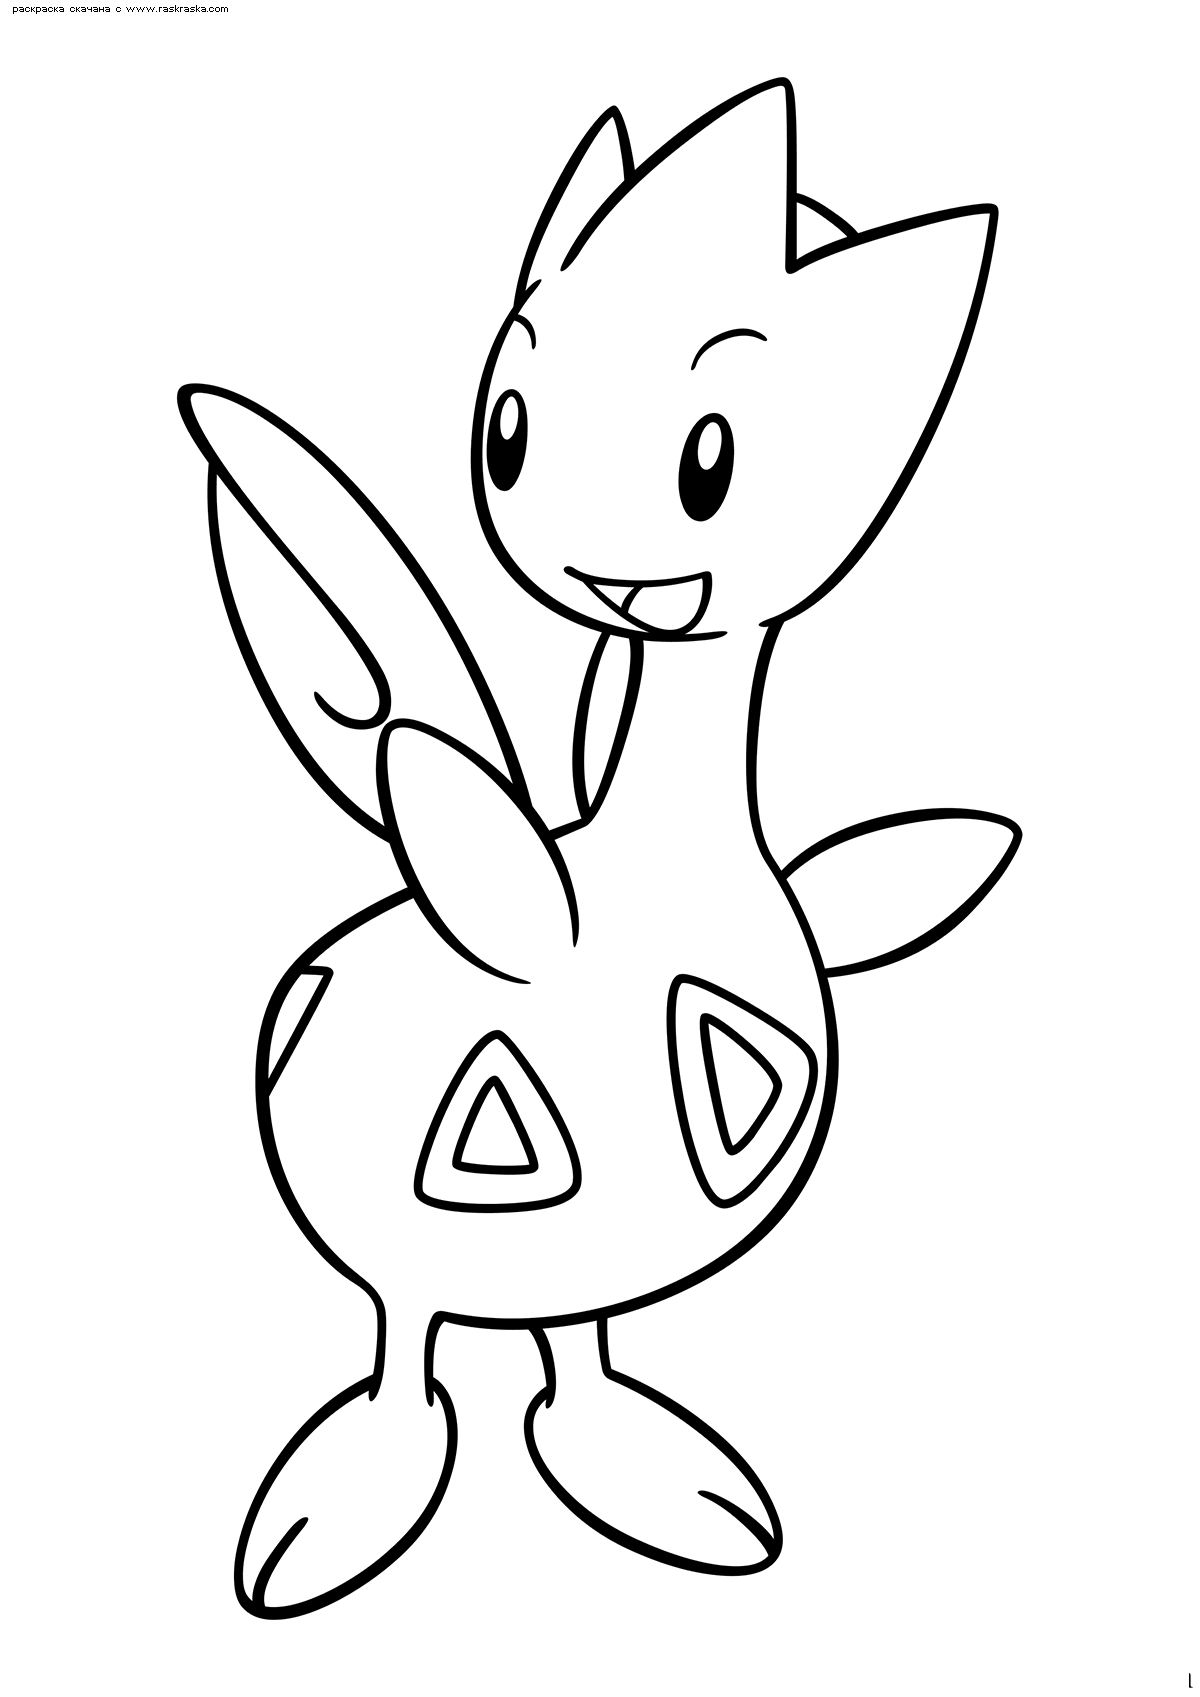 Difficult Pokemon Coloring Pages, HD Png Download - kindpng | 1697x1200